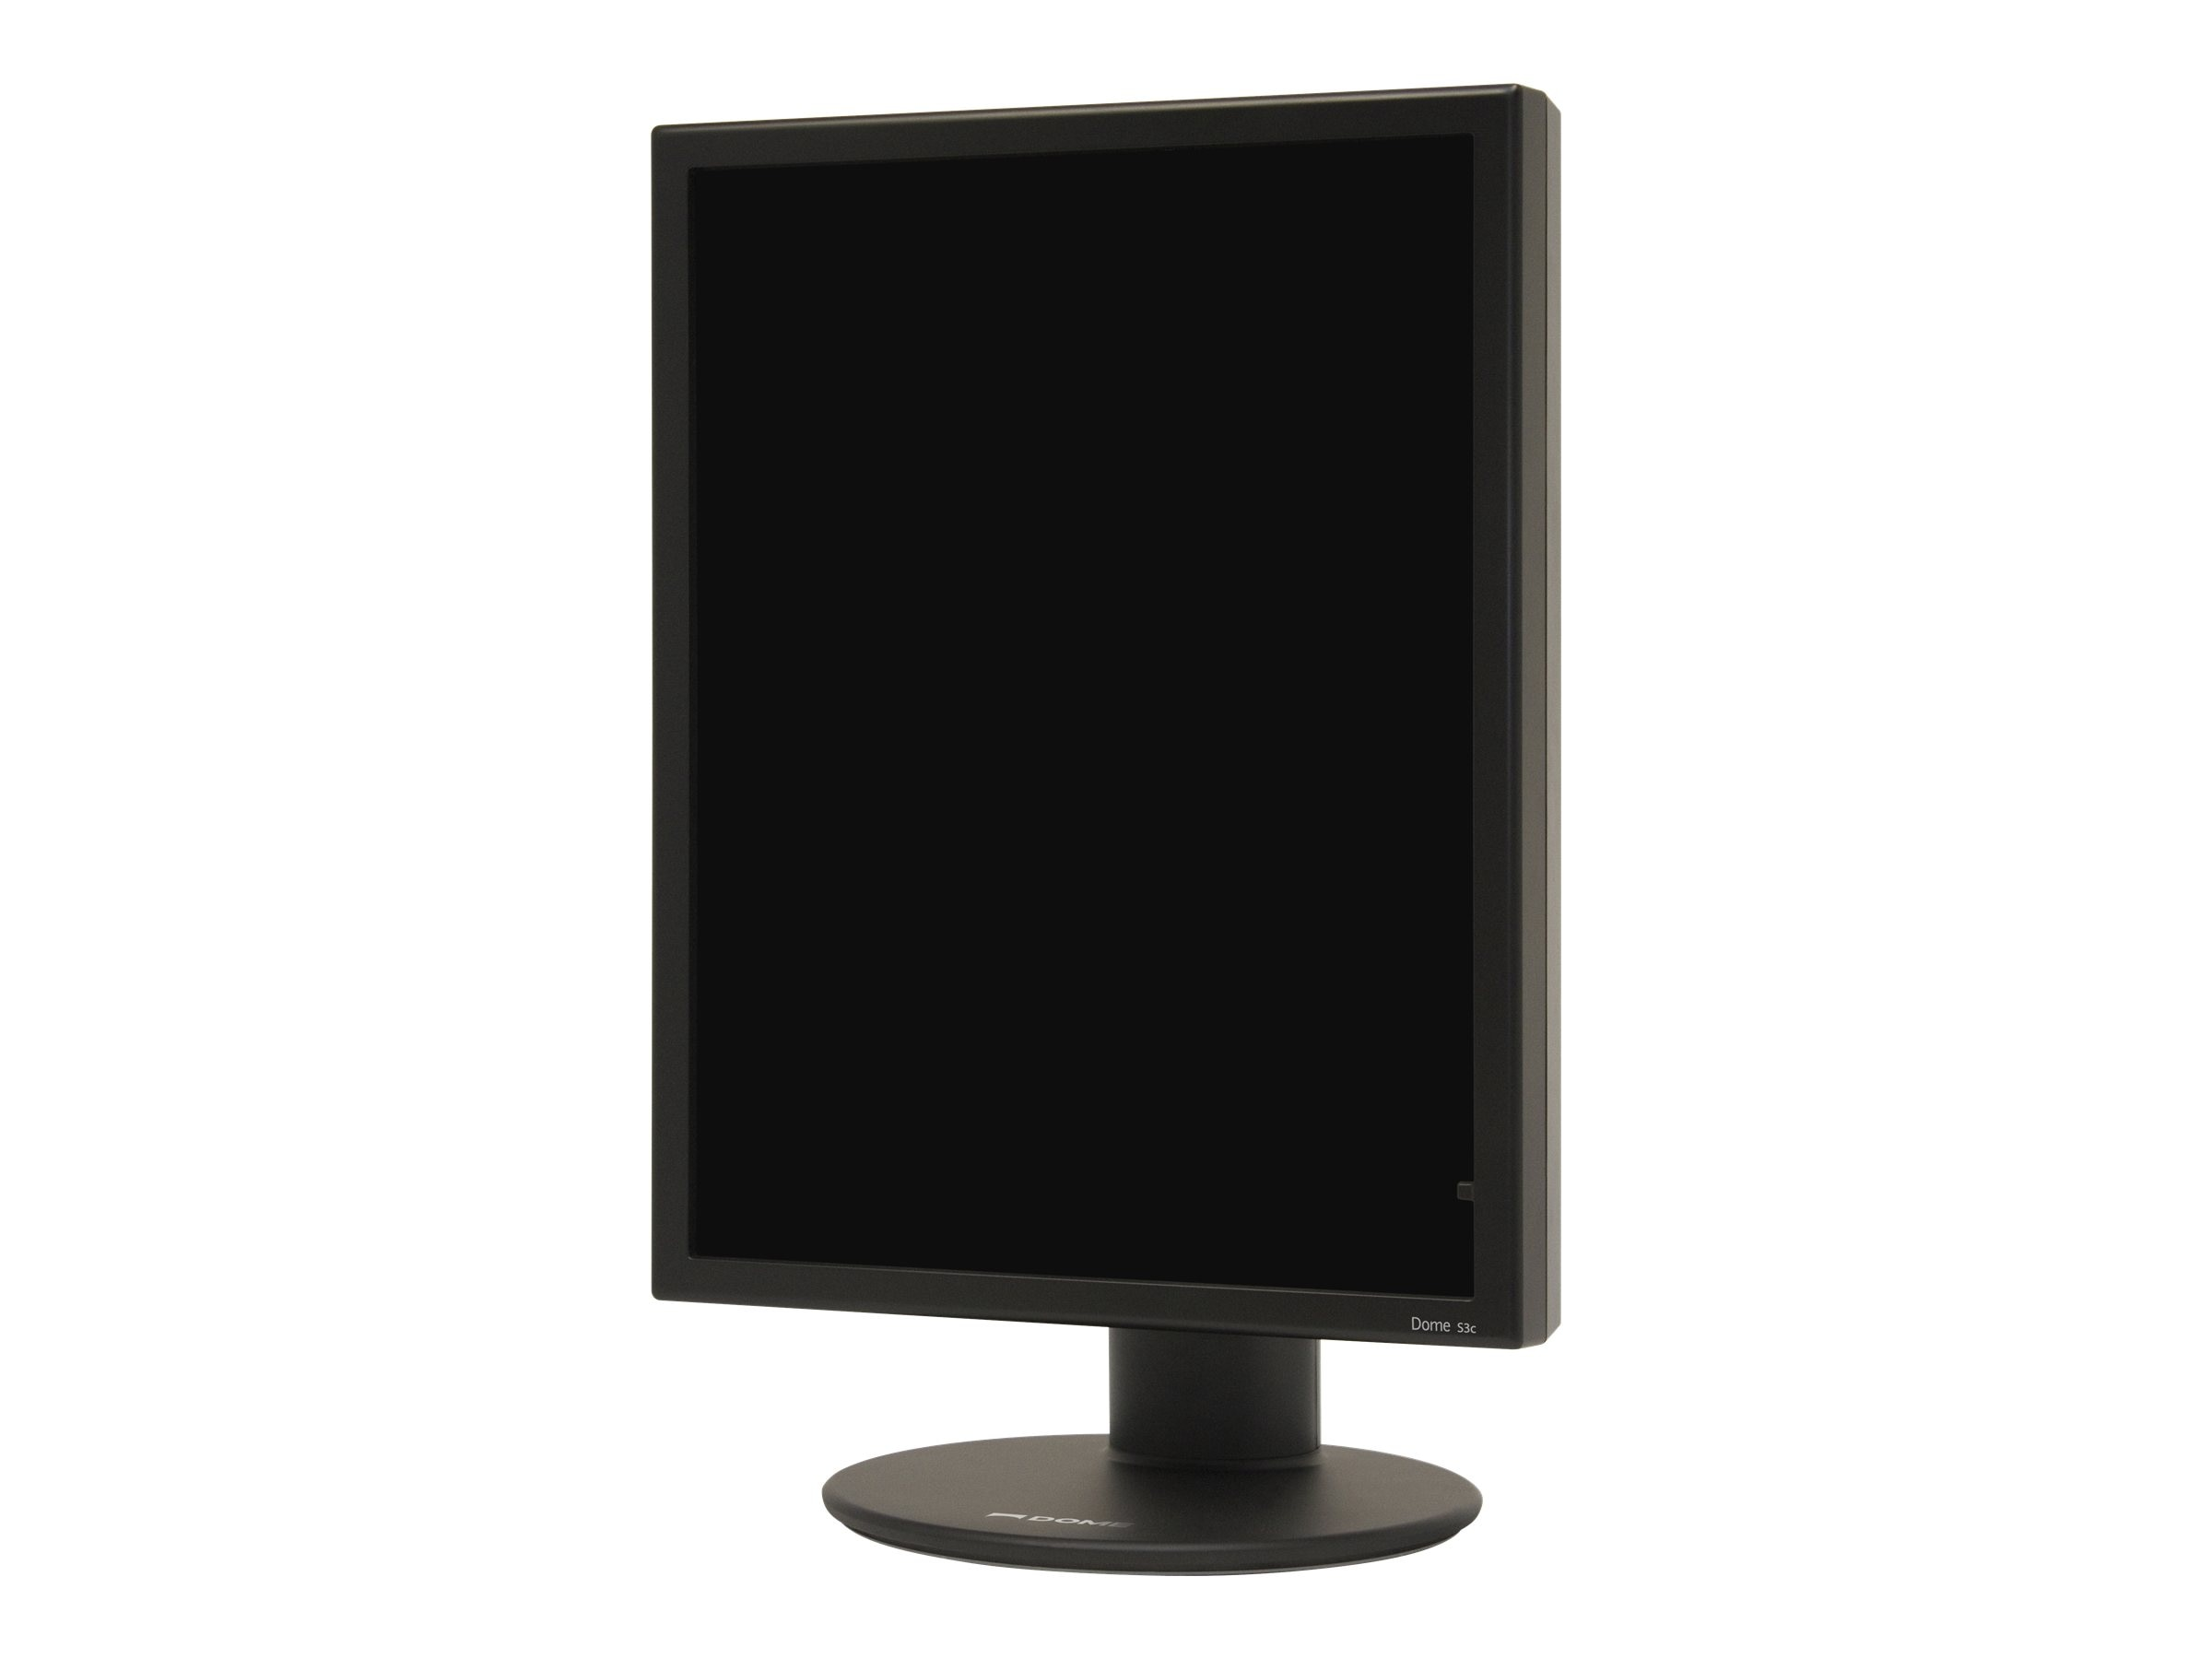 NDS 21.3 Dome S3c Color Display, No Video Card, 997-5803-00-1NN, 13081719, Monitors - Medical